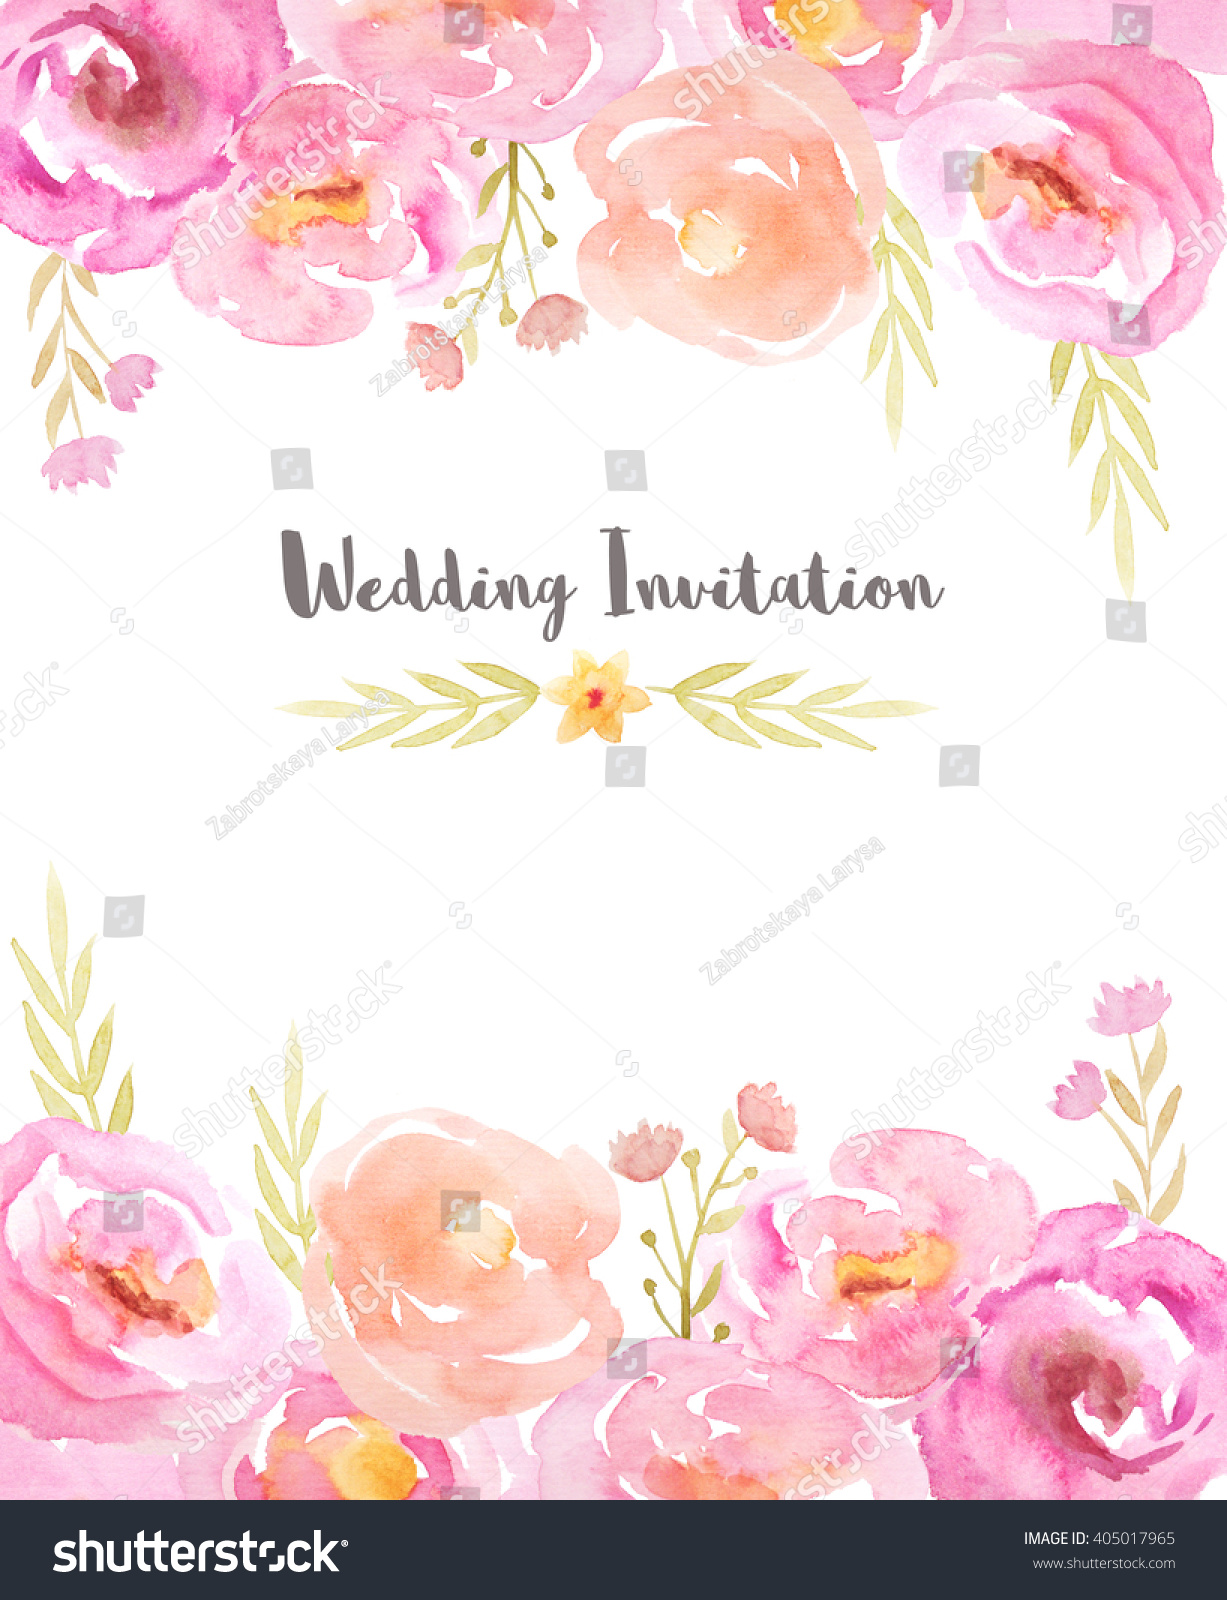 Wedding Invitation Template Hand Painted Watercolor Stock ...